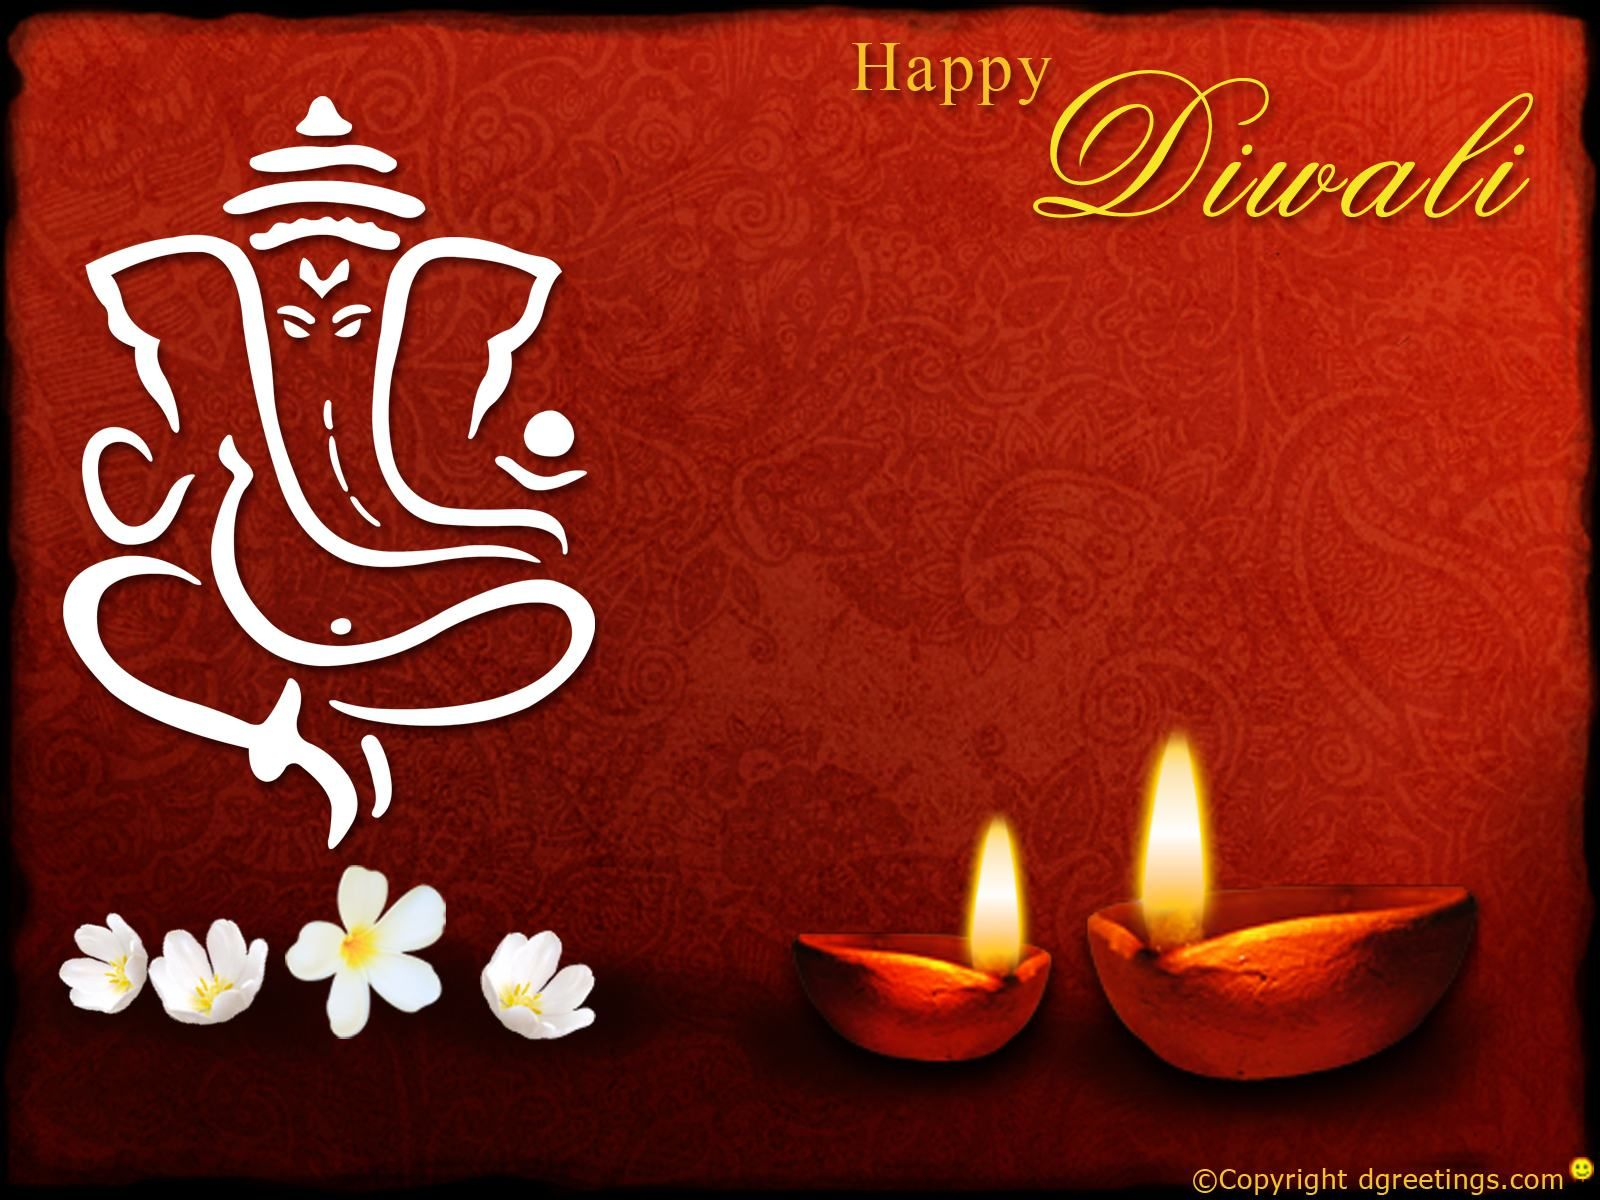 Diwali wishes from dsc heres wishing the entire dsc family a very happy diwali 2015 sms wishes text msg marathi bengali hindi english other languages because wishing in your own language is very charming genuine wish kristyandbryce Gallery